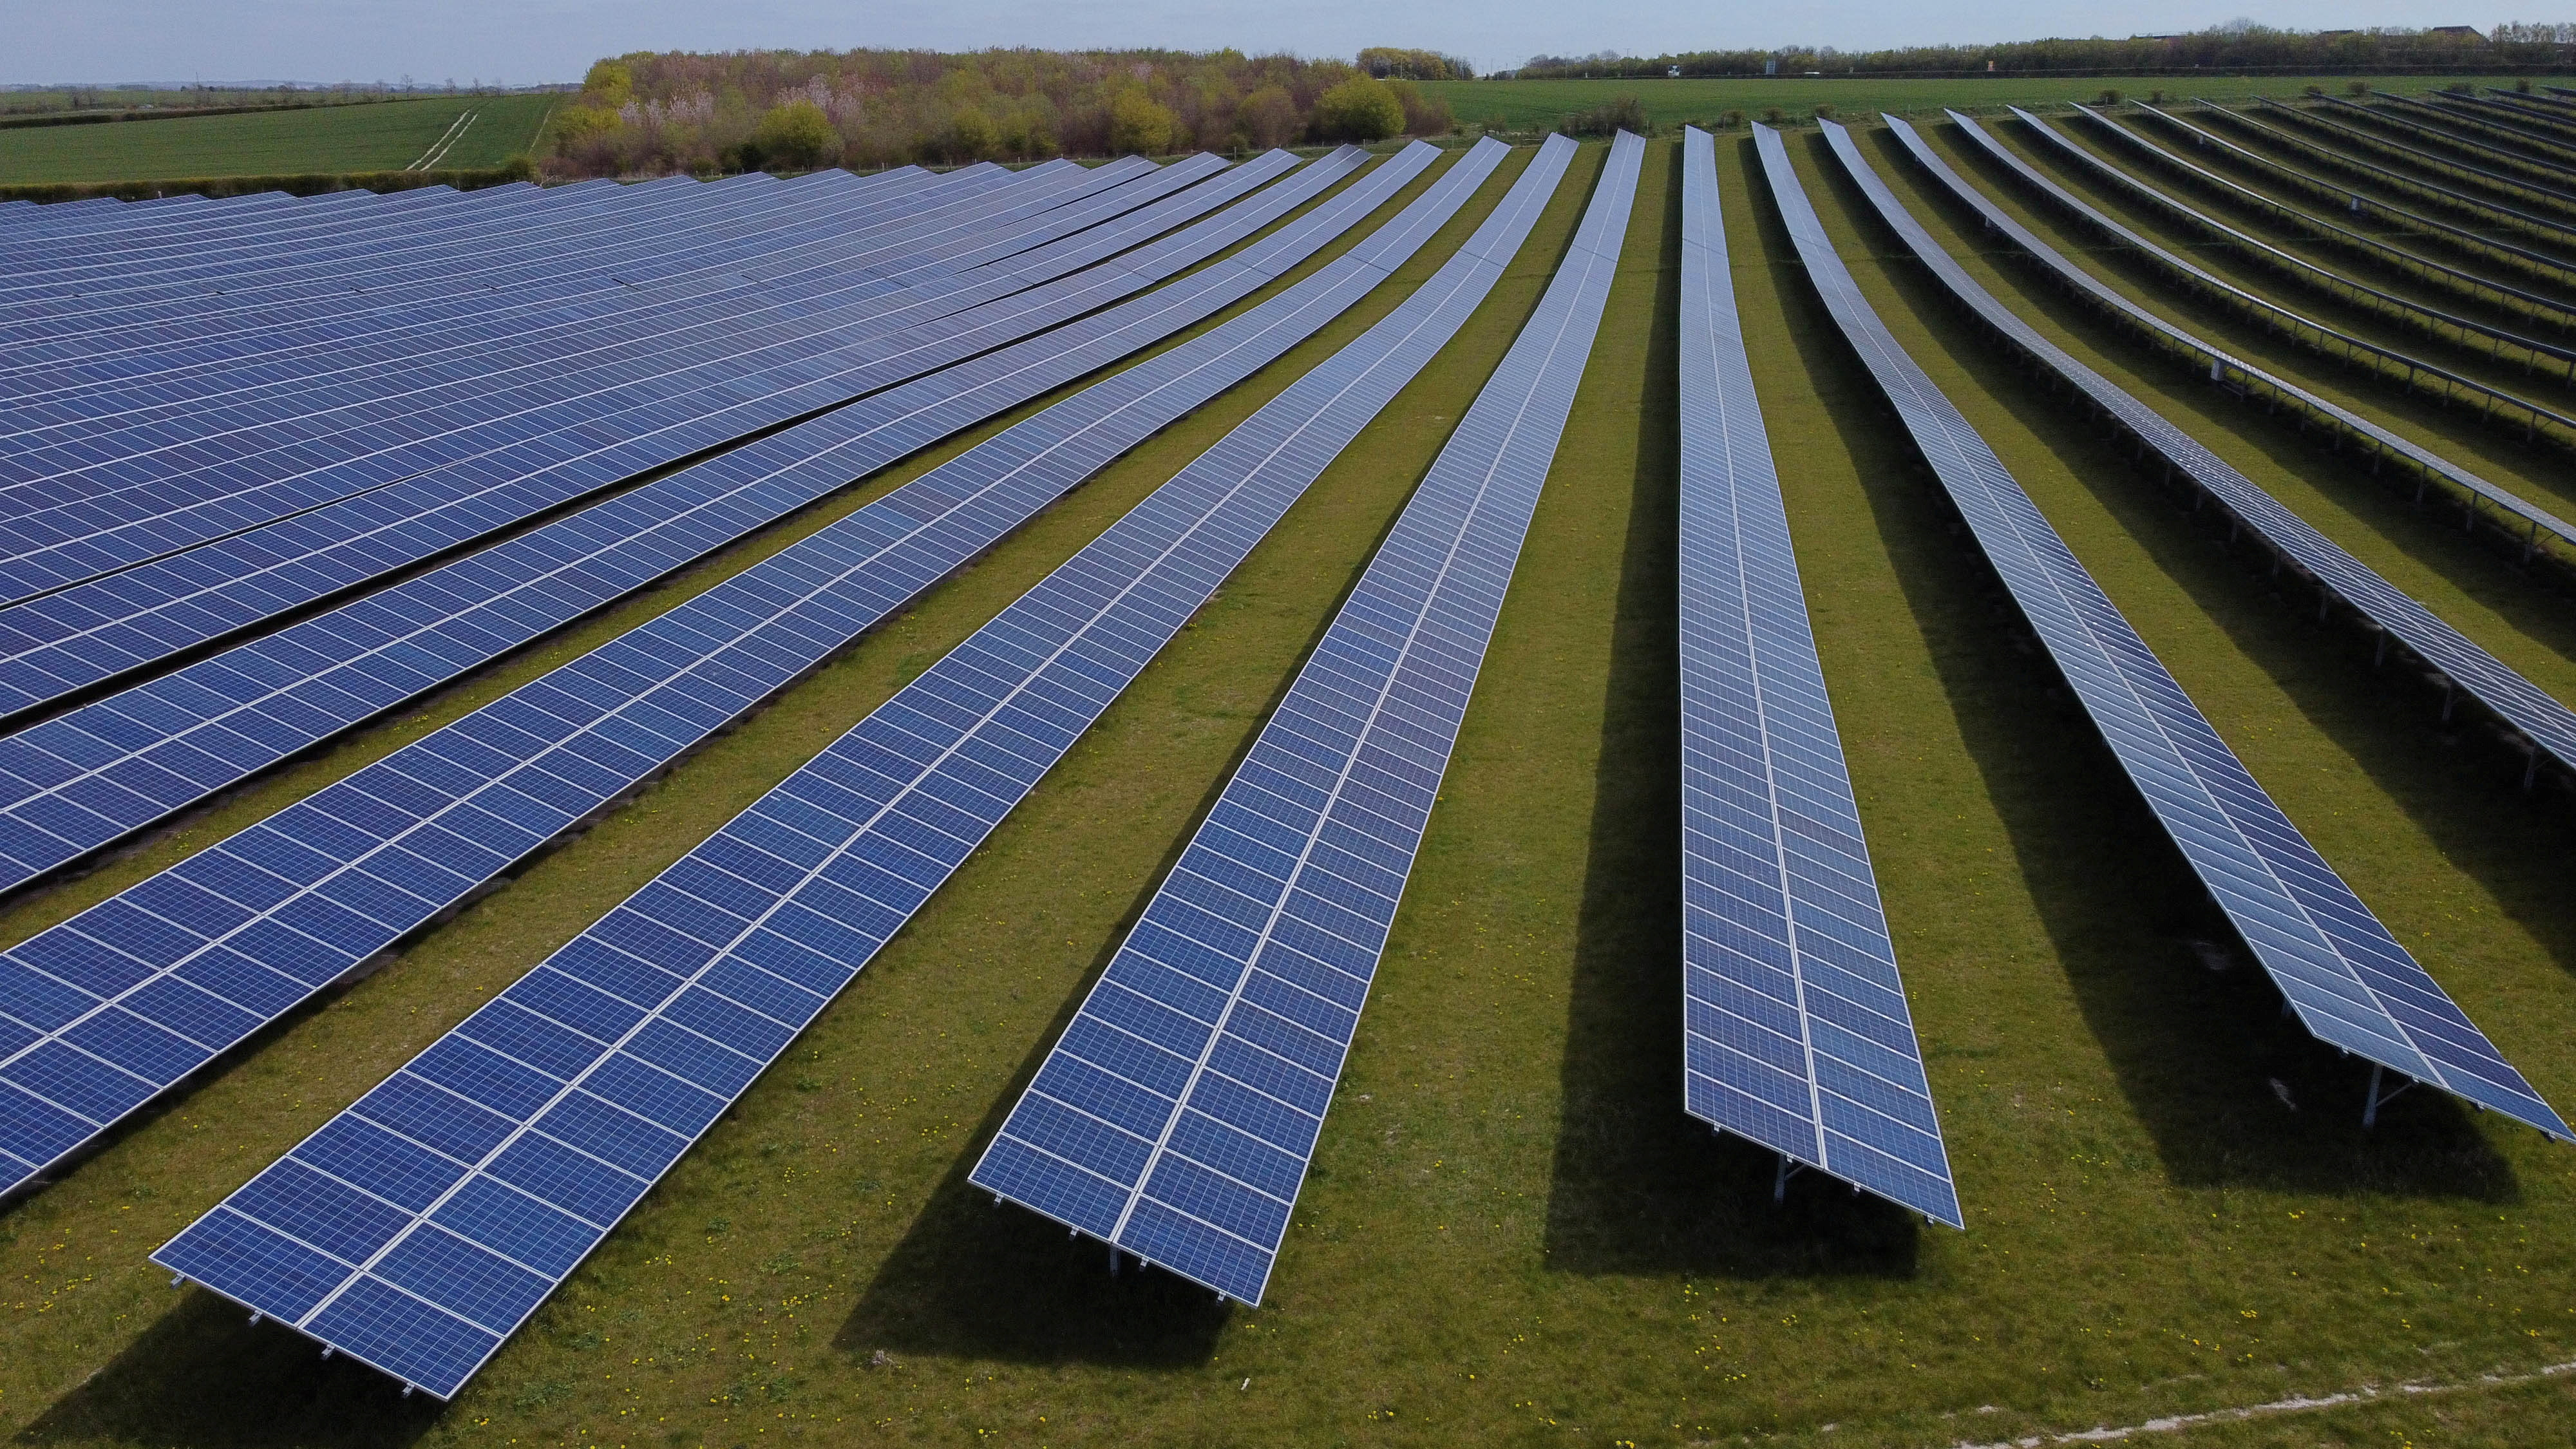 A field of solar panels is seen near Royston, Britain, April 26, 2021. Picture taken with a drone. REUTERS/Matthew Childs/File Photo